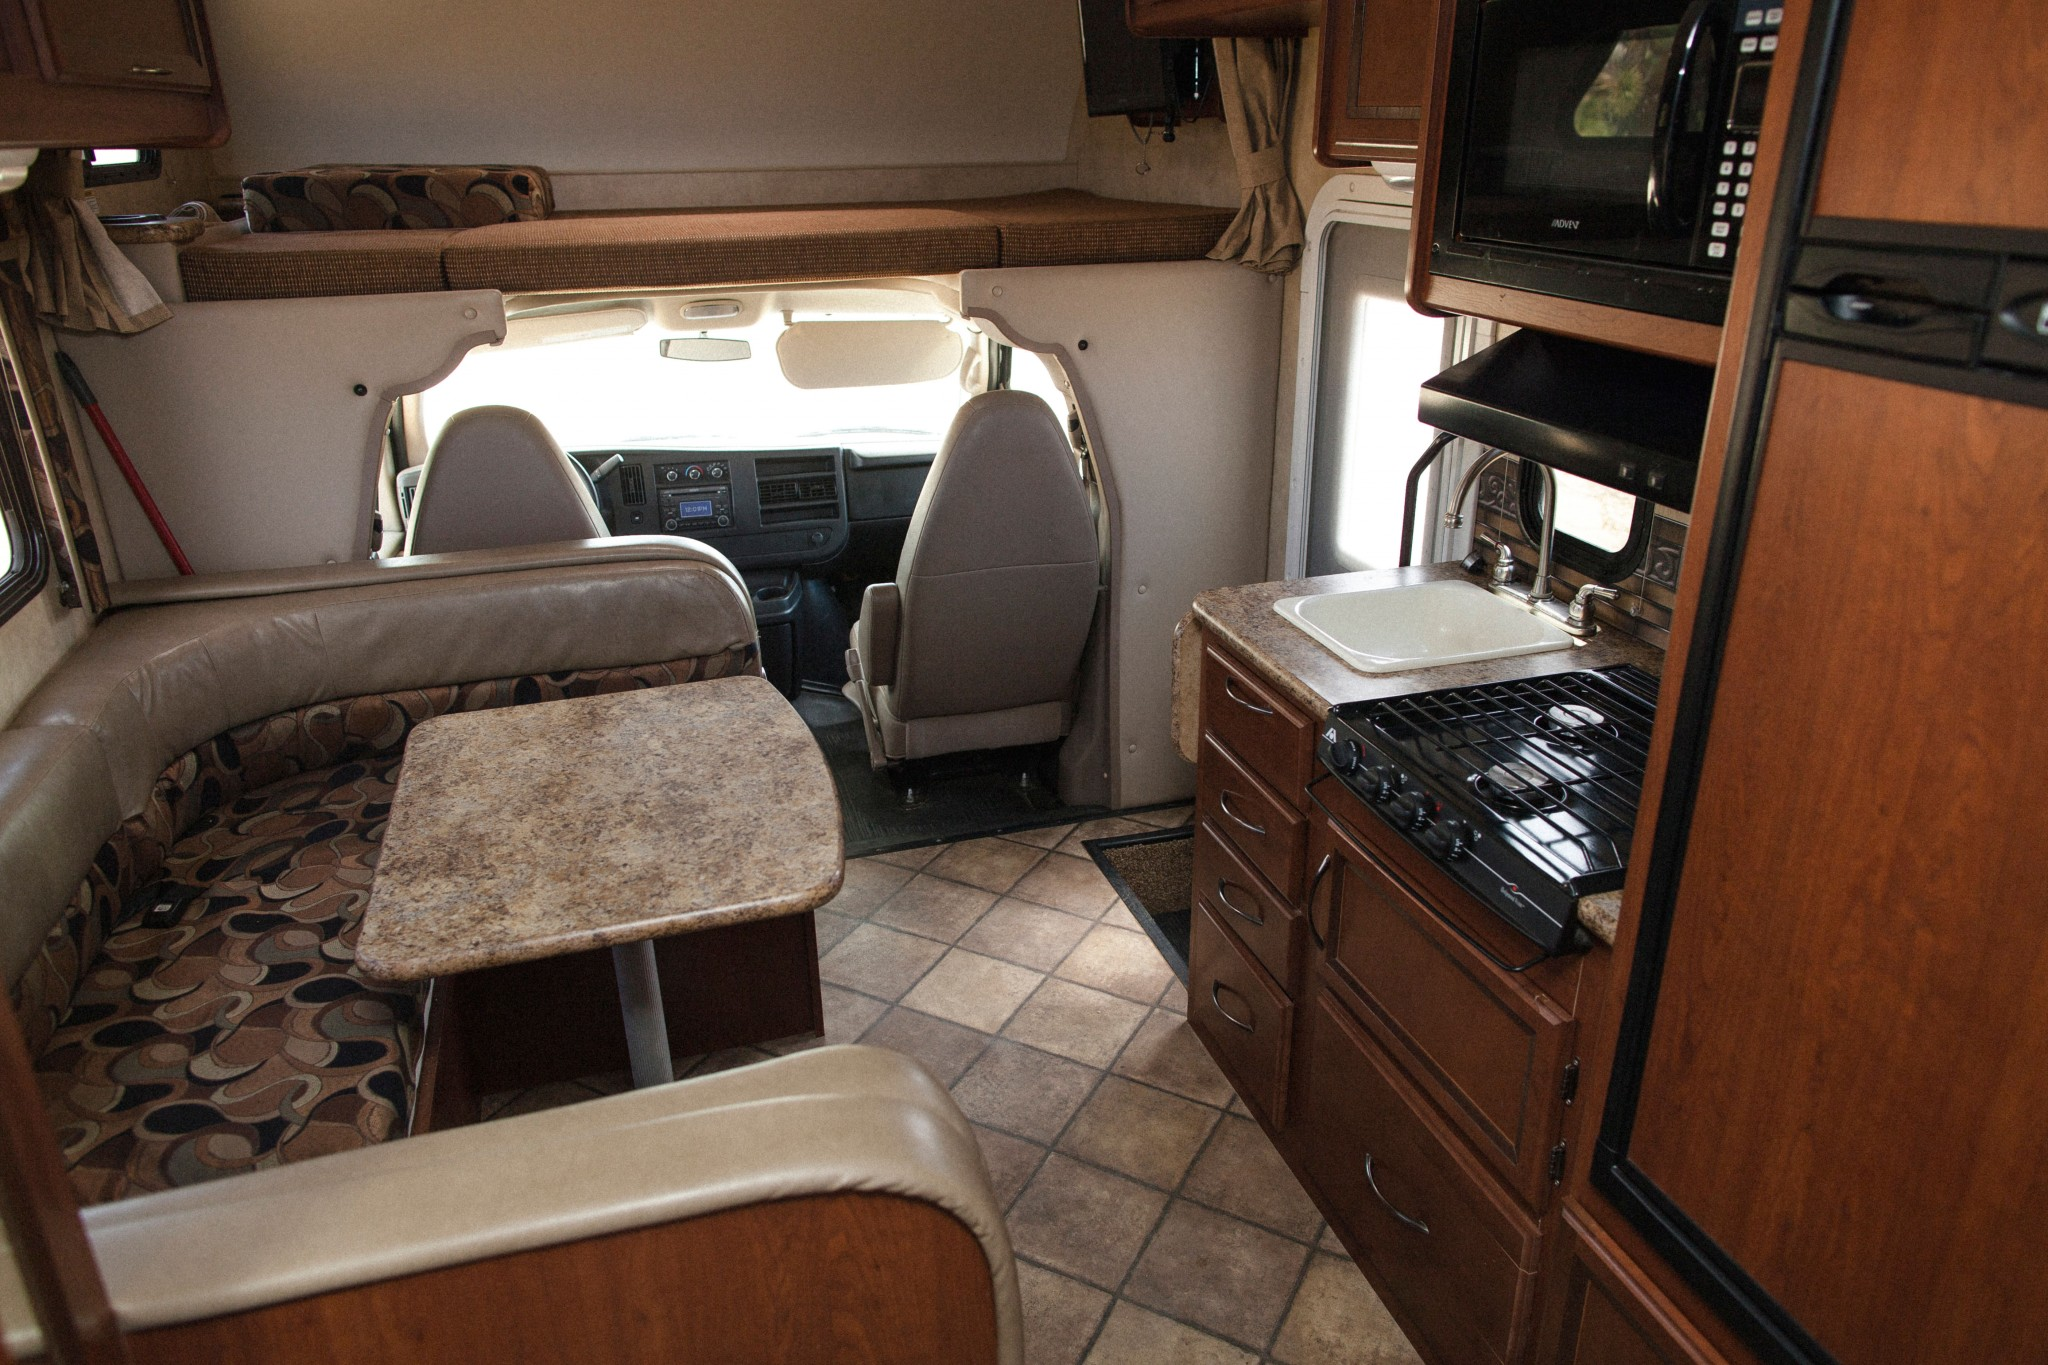 RV Kitchens